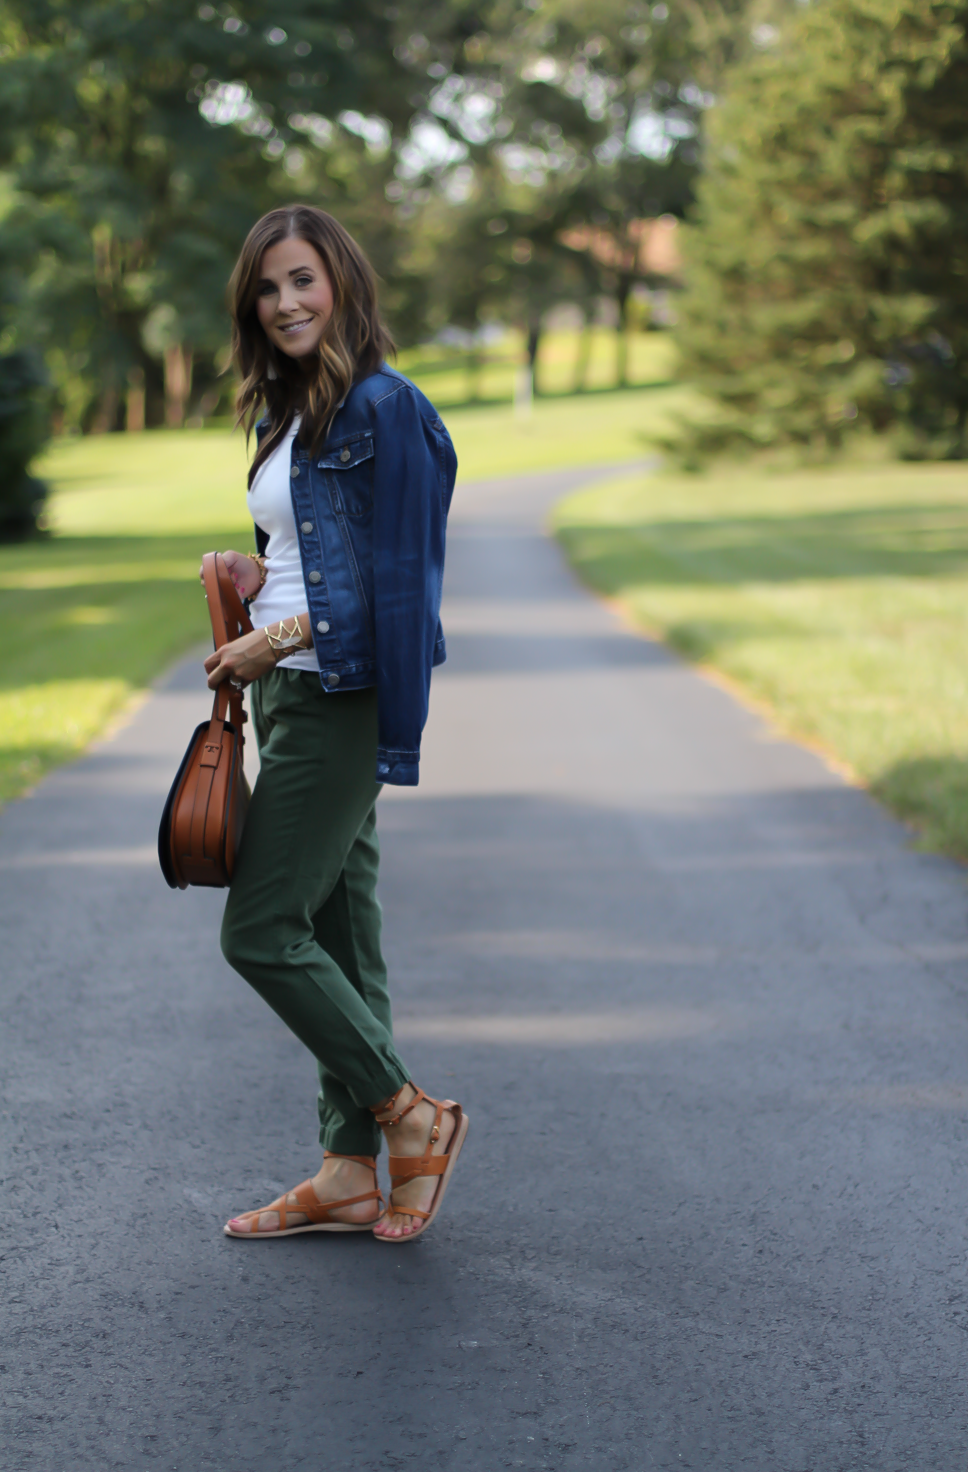 Army Green Joggers, White Sleeveless Shell Tee, Gladiator Sandals, Saddle Bag, J.Crew, tory Burch, Ancient Gladiator 3